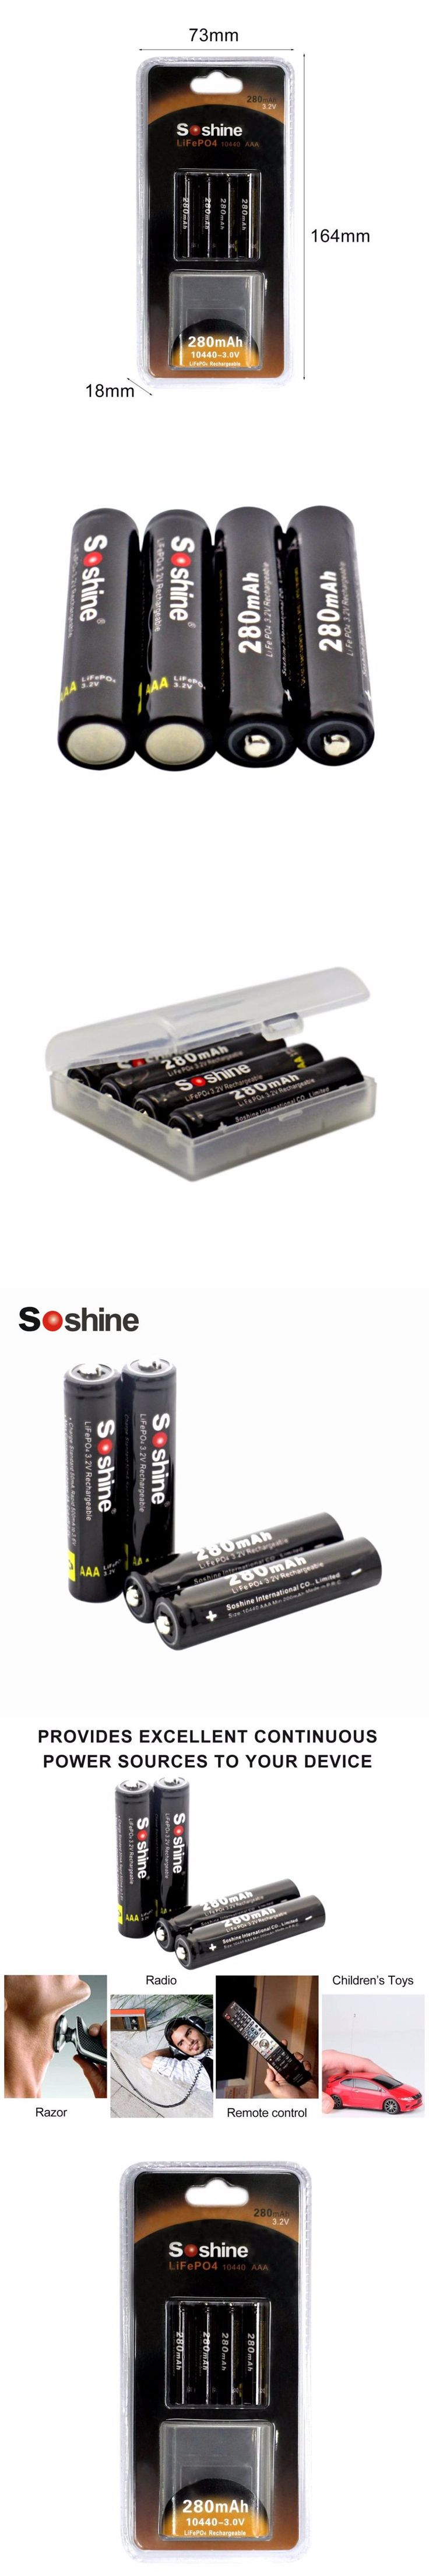 4 pcs/lot Soshine AAA 8.4V 280mAh Rechargeable battery LiFePO4 Cell With 2 Battery Connectors High Energy Density